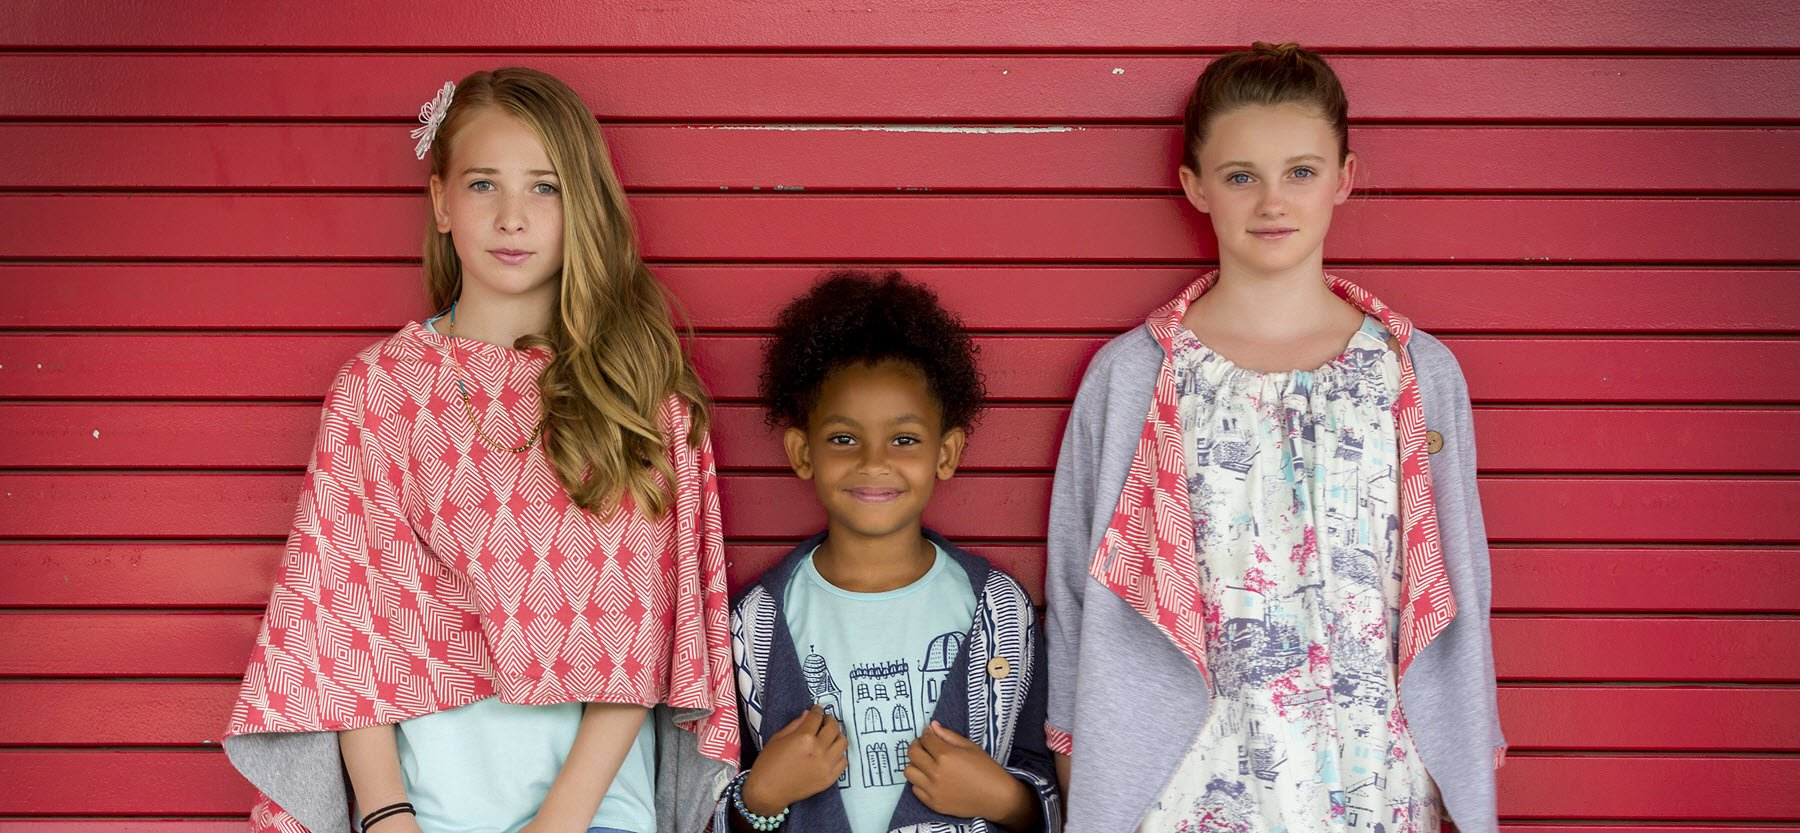 Versatile tween dresses, skirts, tops and tees. Calzico